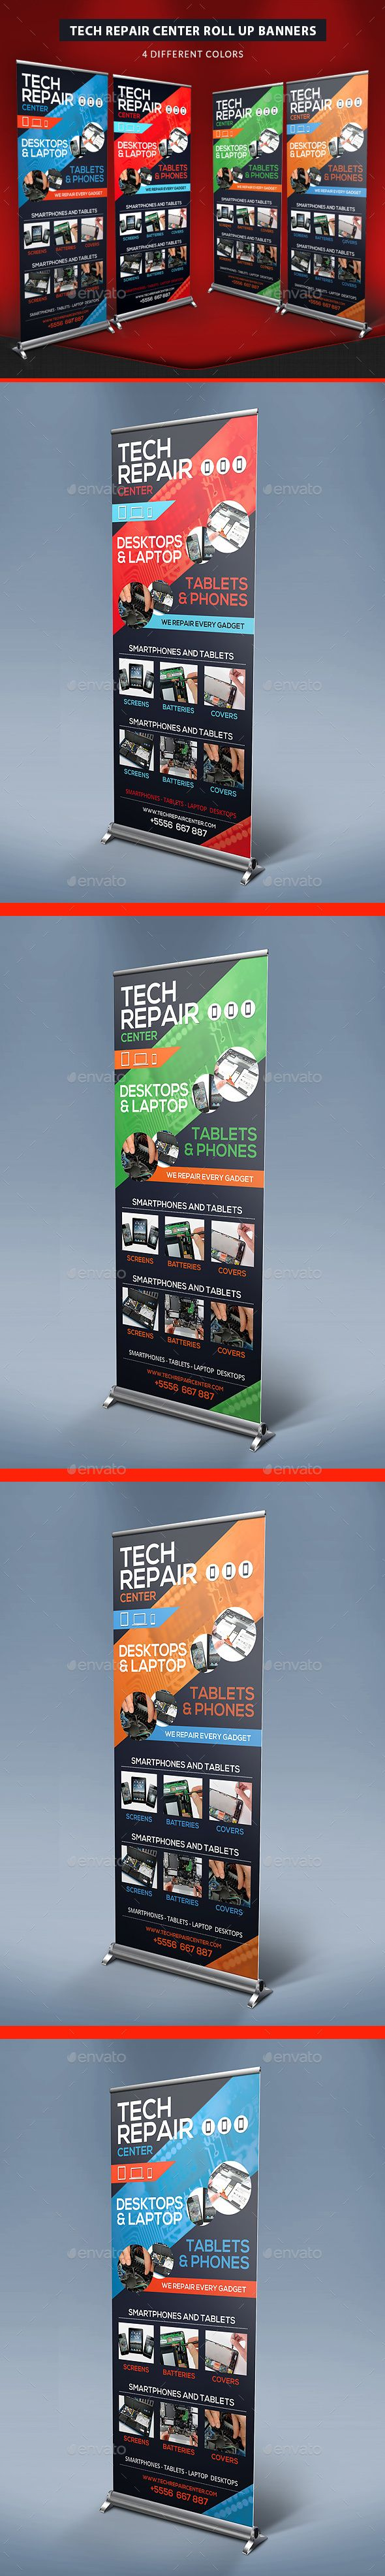 Tech Repair Center Roll Up Banners by HollyMolly Increase your clients and social influence with this Tech Repair Center Roll Up Template. With these signage display template, yo